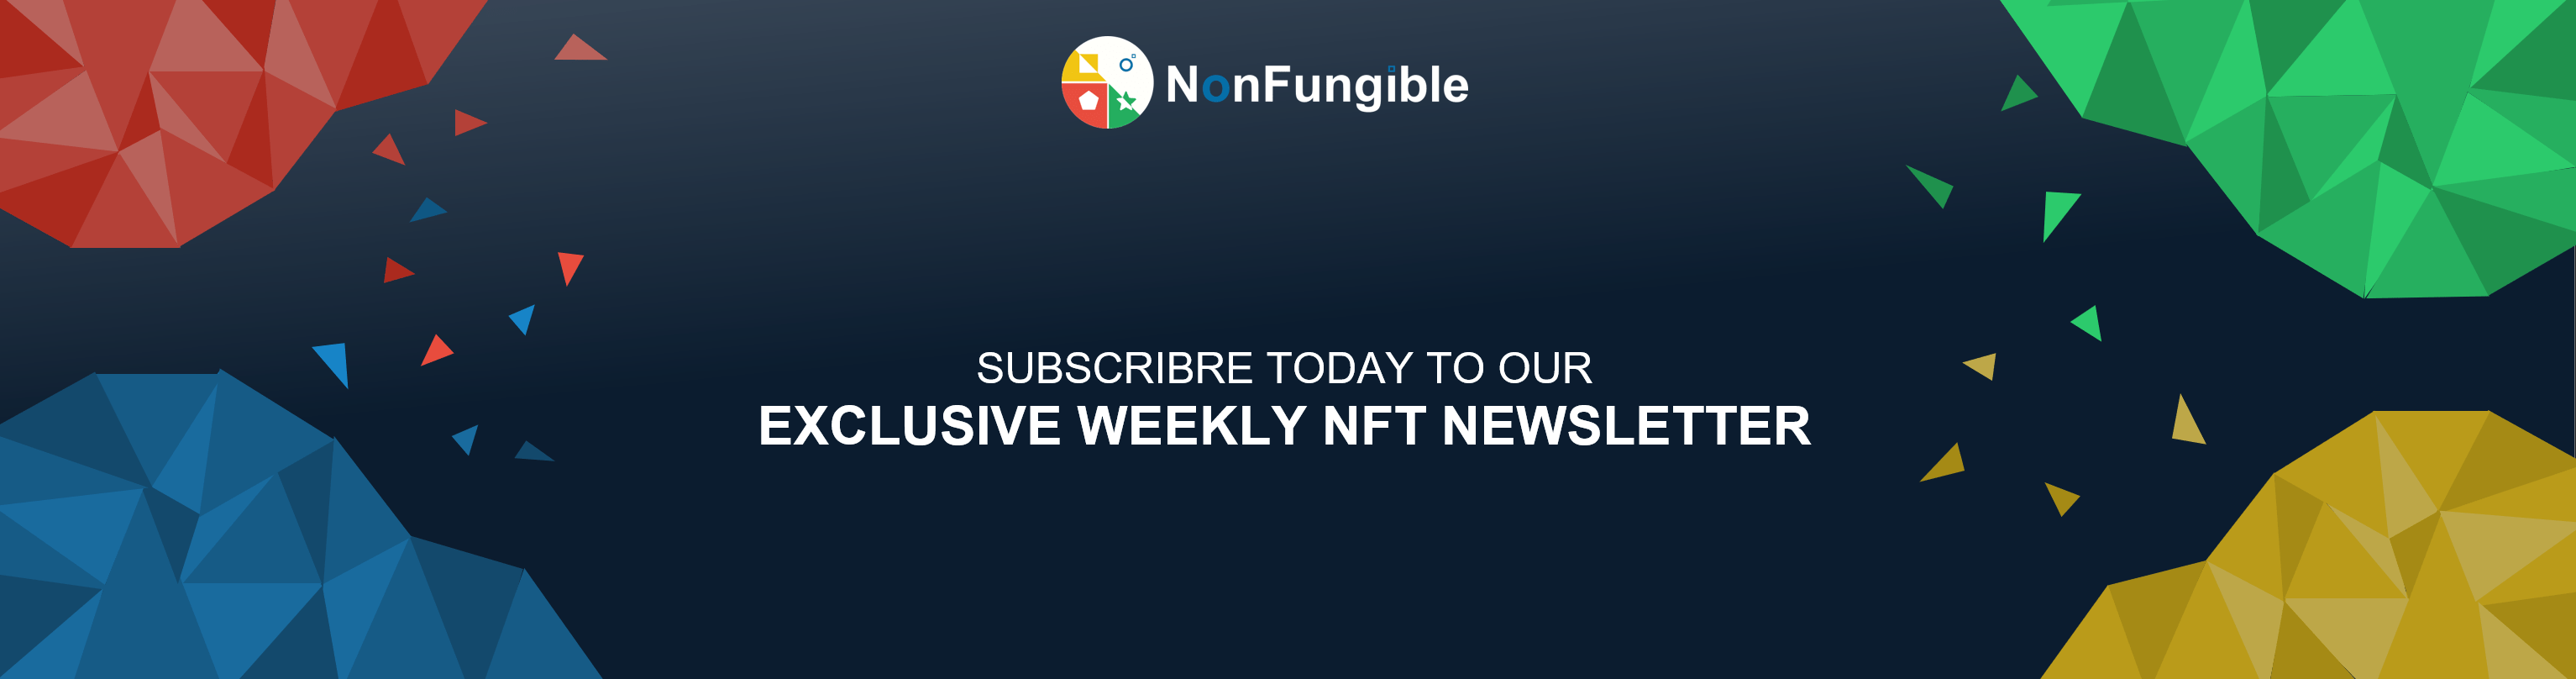 nft weekly news banner